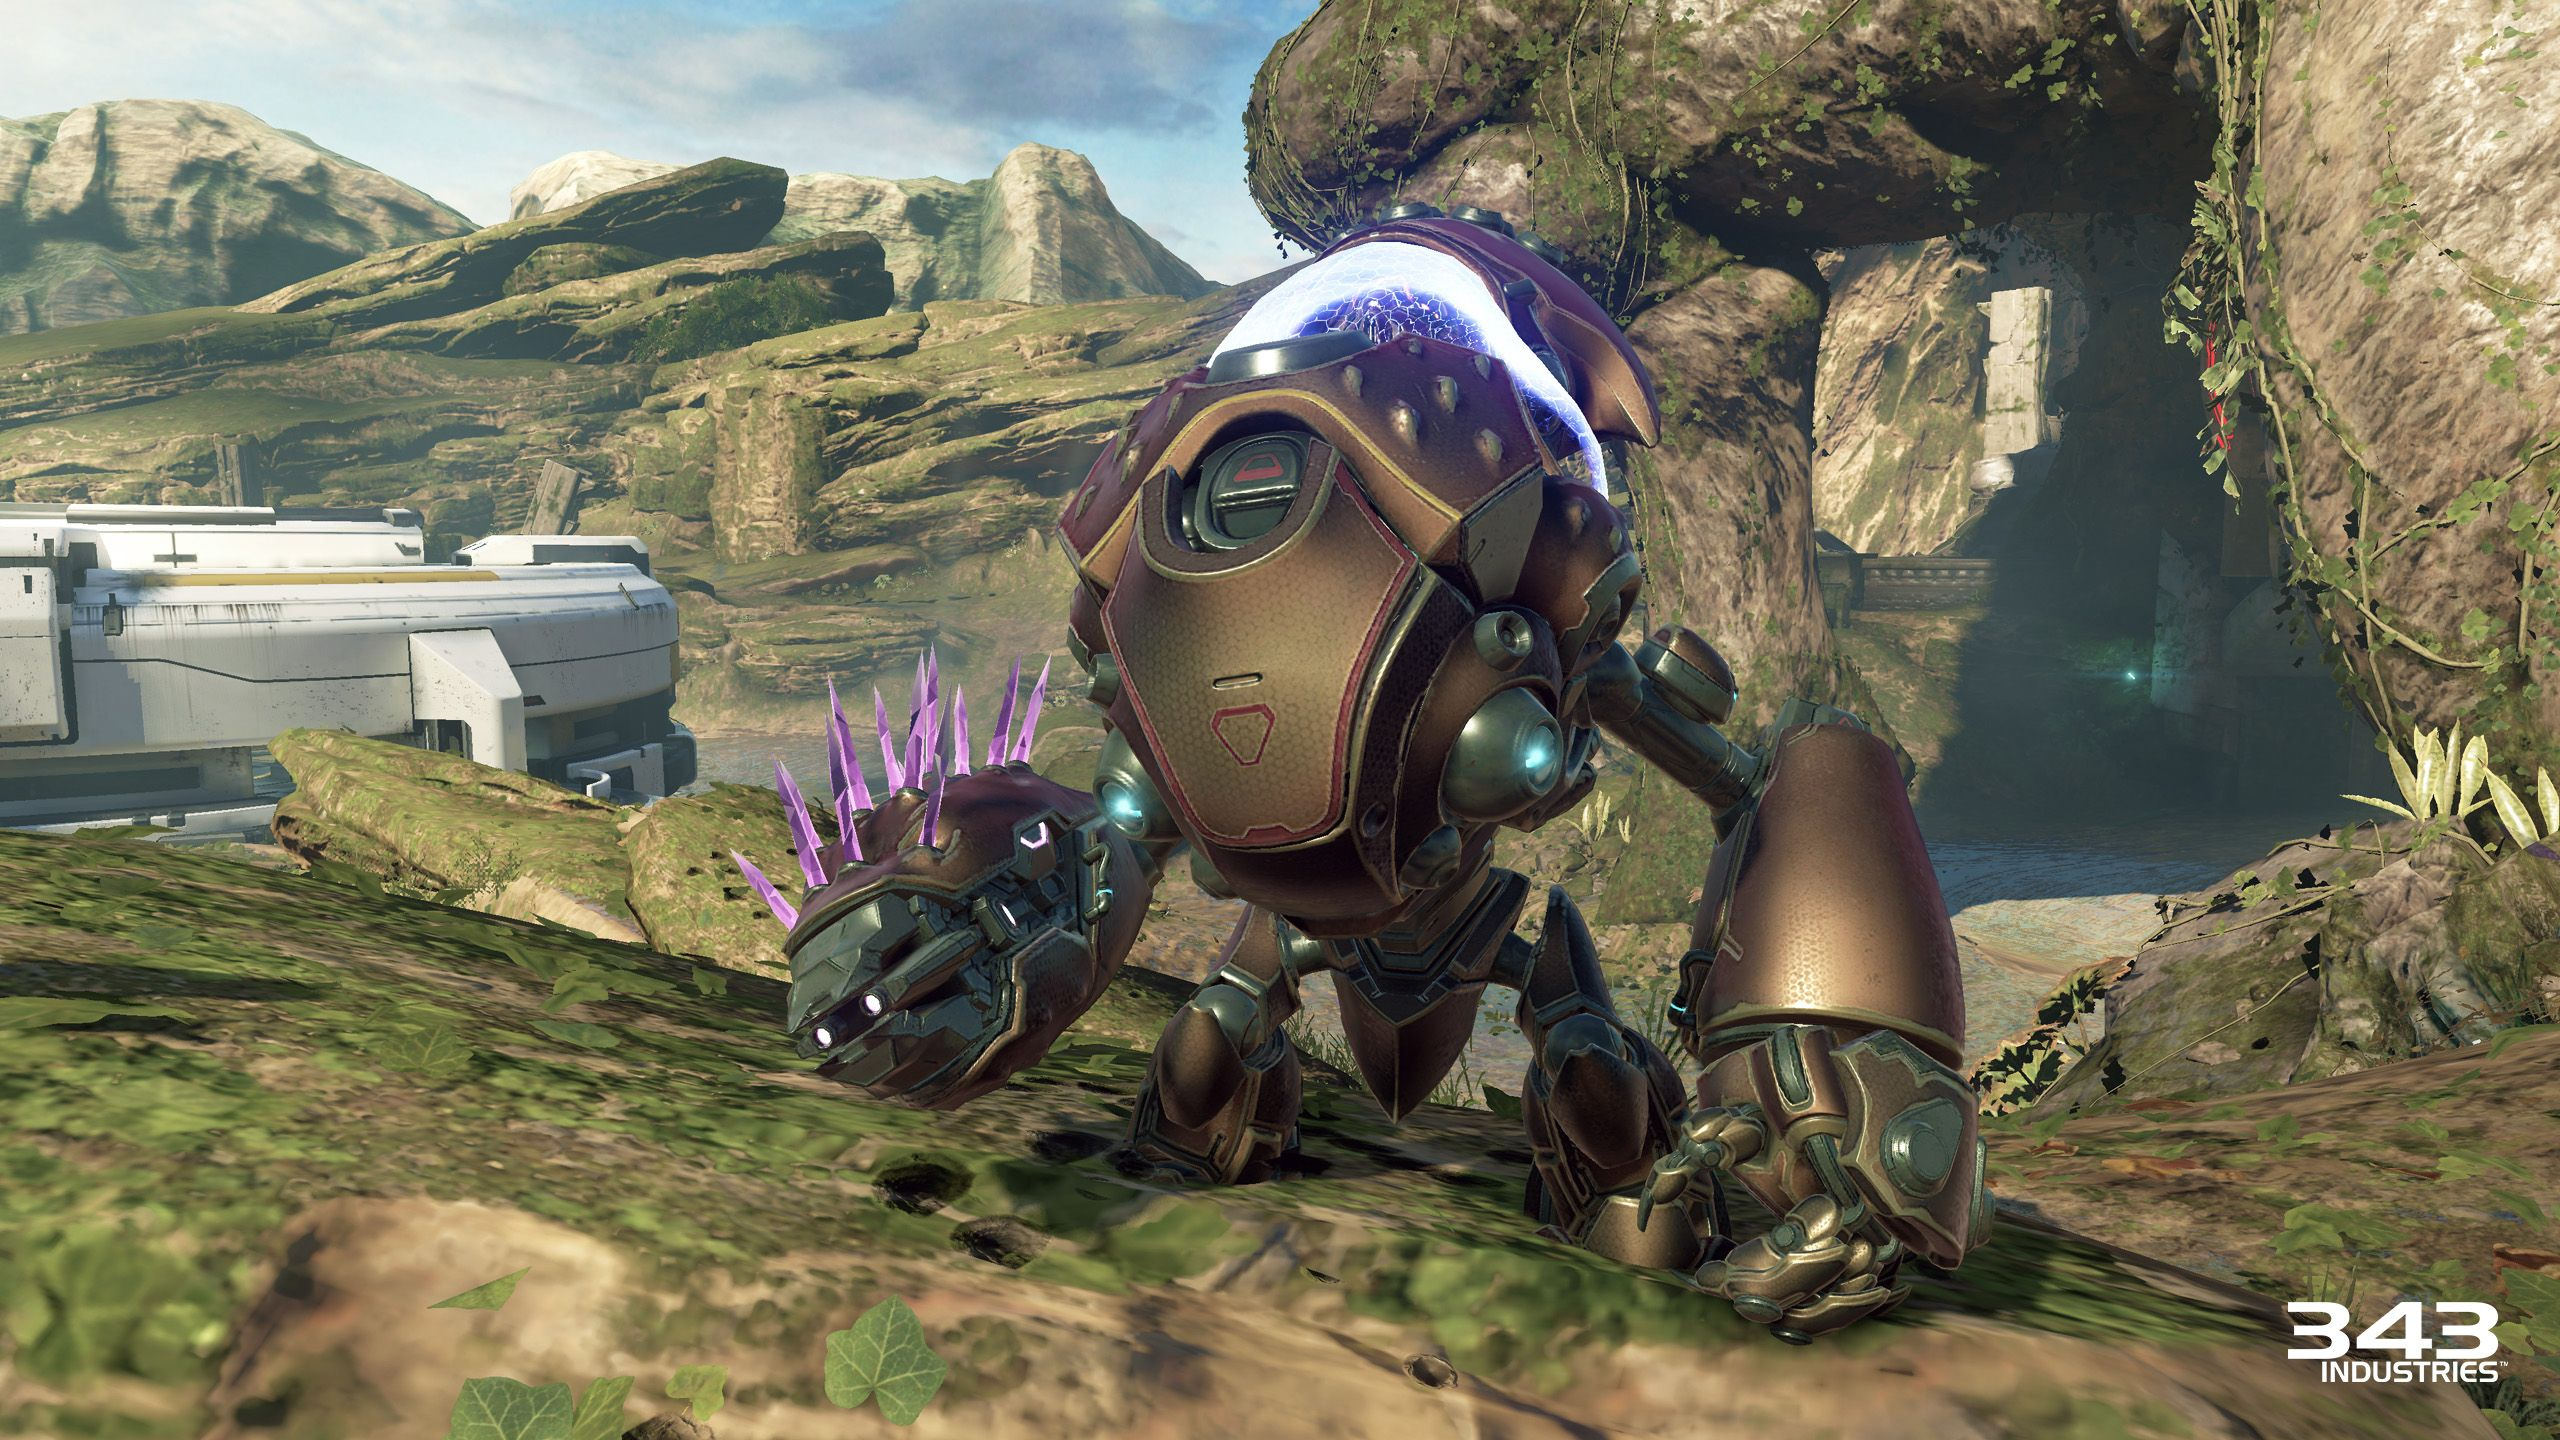 Halo 5's Next Boss Is A Grunt In A Mech Suit, New Air Support